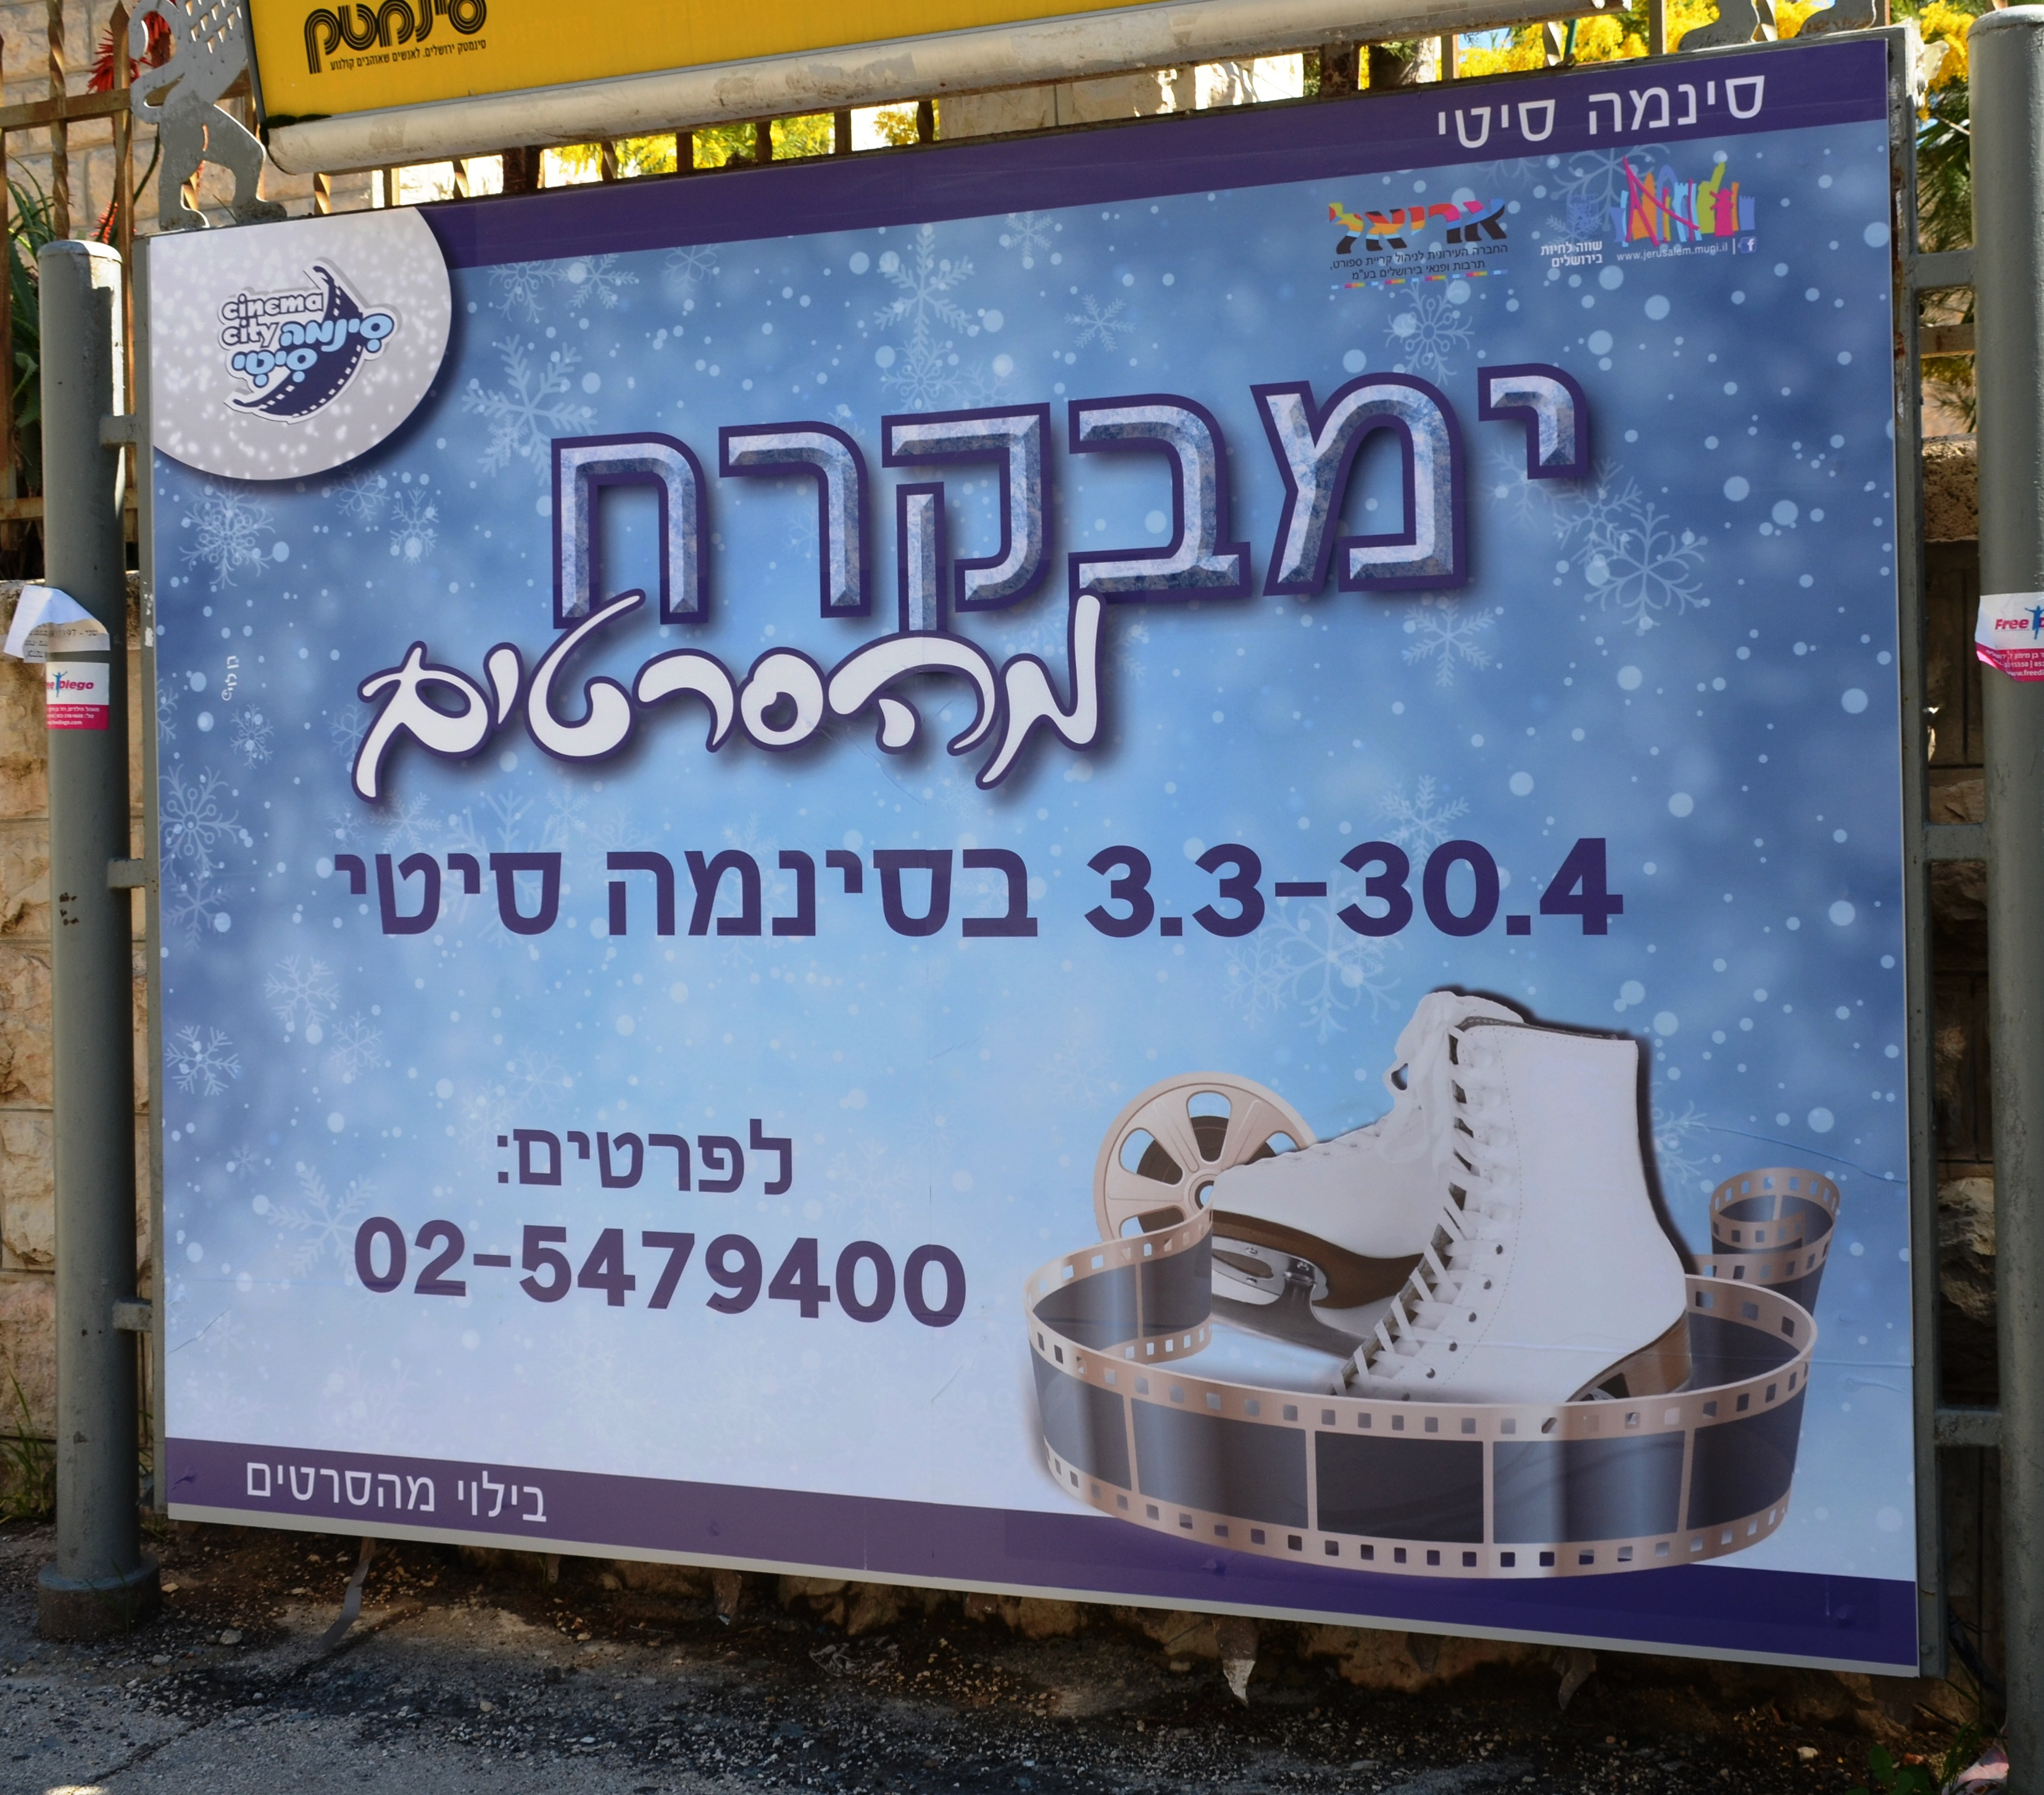 Ice skating at Cinema City Jerusalem